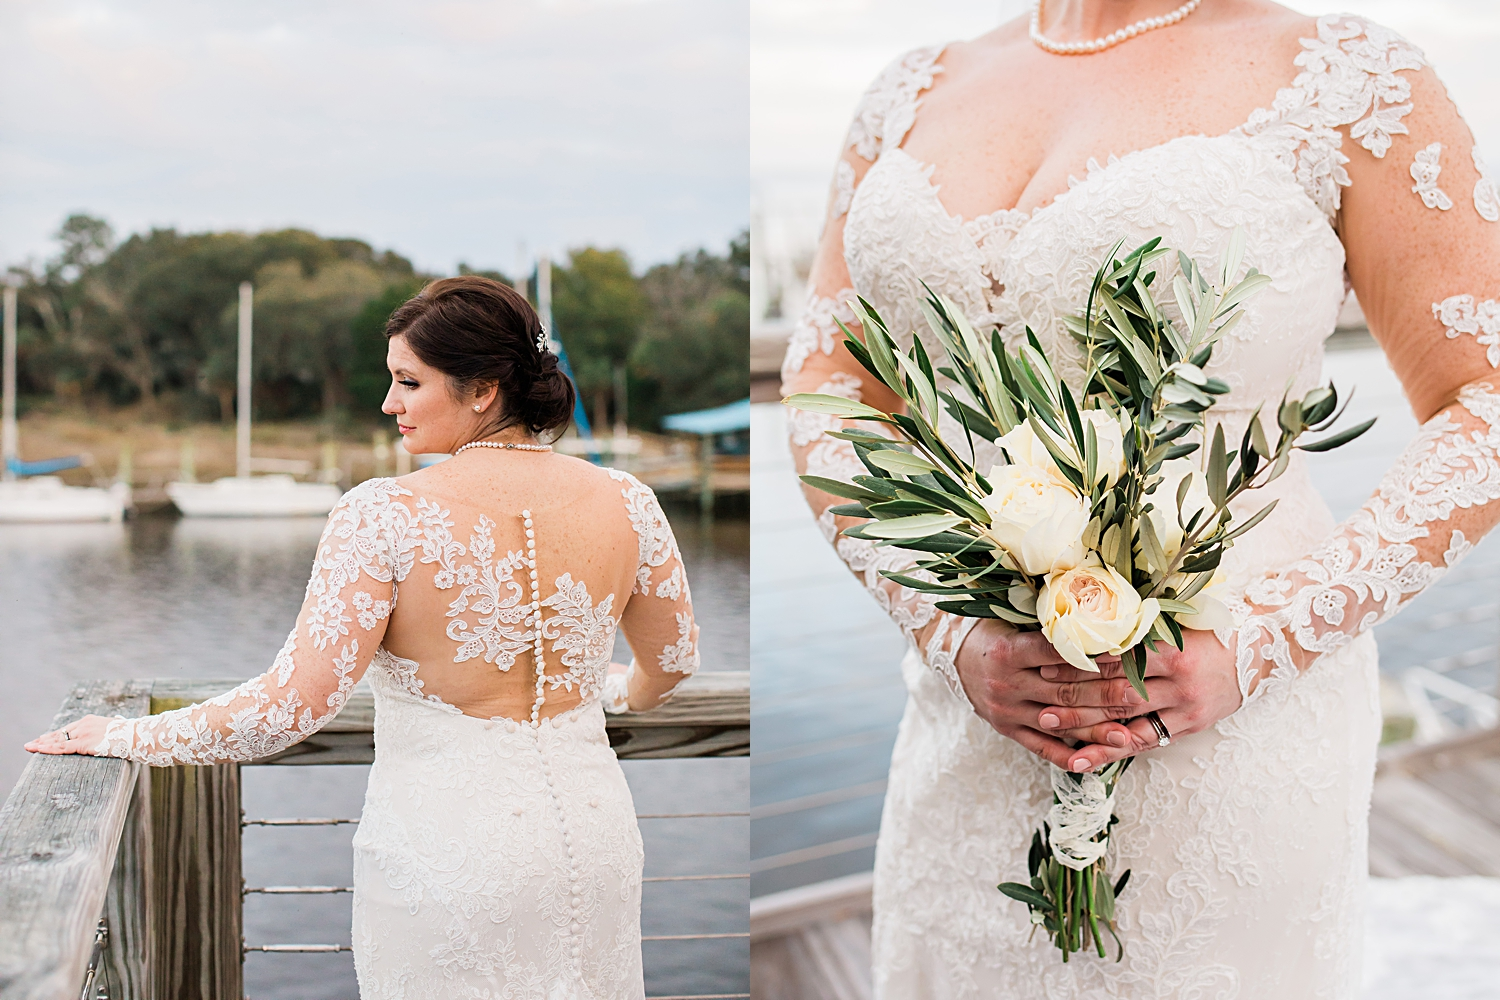 lucy-creek-dockhouse-wedding-photographer-beaufort-wedding-photographer-jb-marie-photography